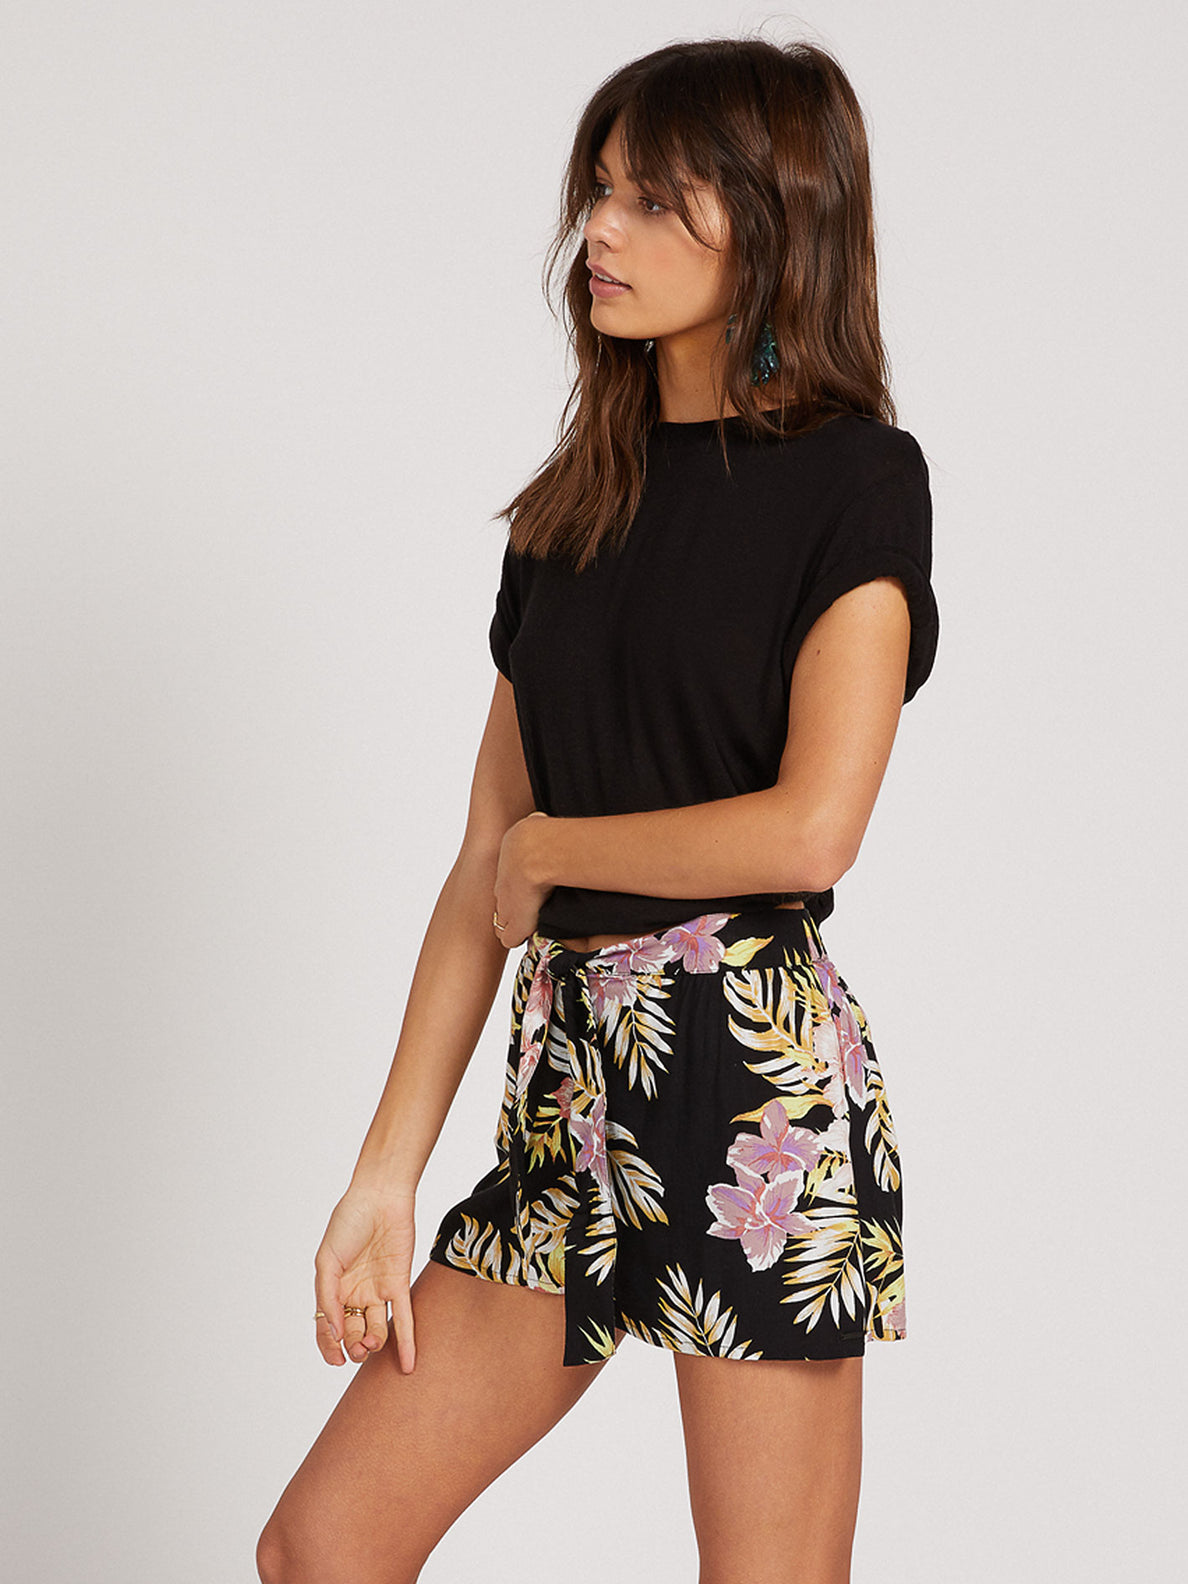 FORGET YOSELF SHORT - BLACK FLORAL PRINT (B0922000_BFP) [1]